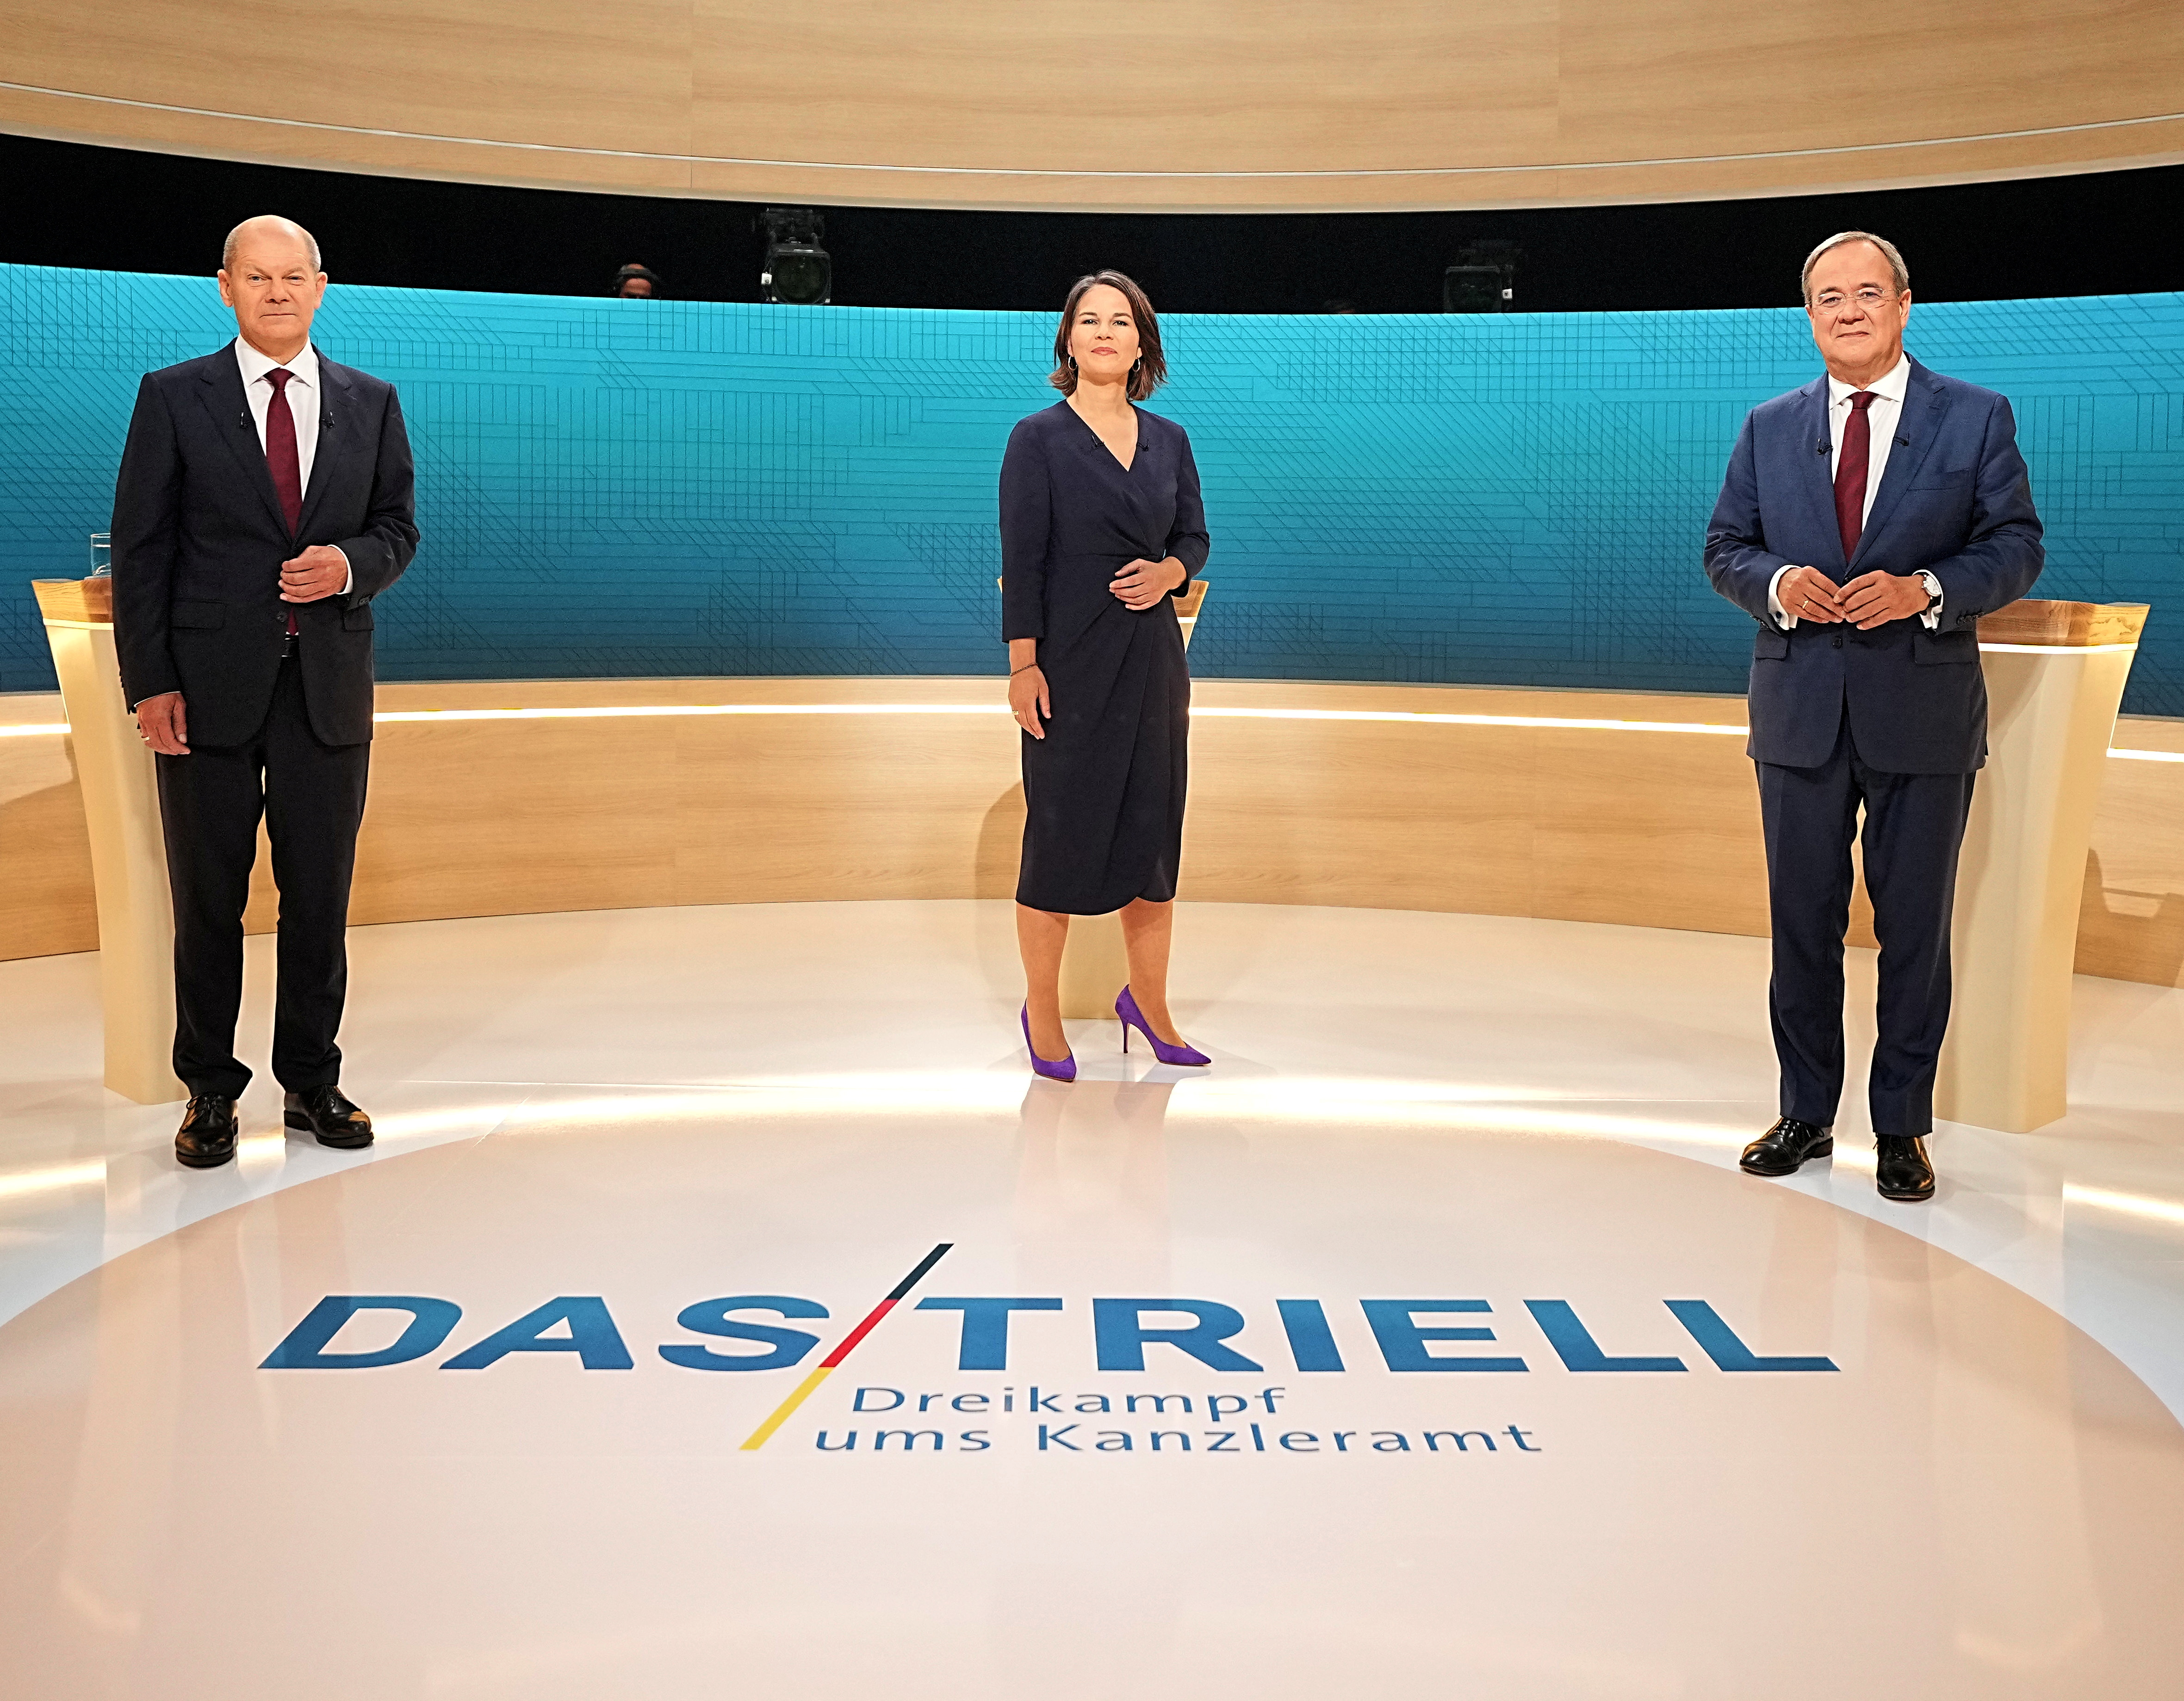 Chairwoman of Buendnis 90/Die Gruenen Annalena Baerbock, Prime Minister of North Rhine-Westphalia (NRW) and leader of the Christian Democratic Union (CDU) Armin Laschet and German Finance Minister and Social Democratic Party candidate Olaf Scholz are pictured before a televised debate of the candidates to succeed Angela Merkel as German chancellor in Berlin,?Germany, September 12, 2021. Michael?Kappeler/Pool via REUTERS